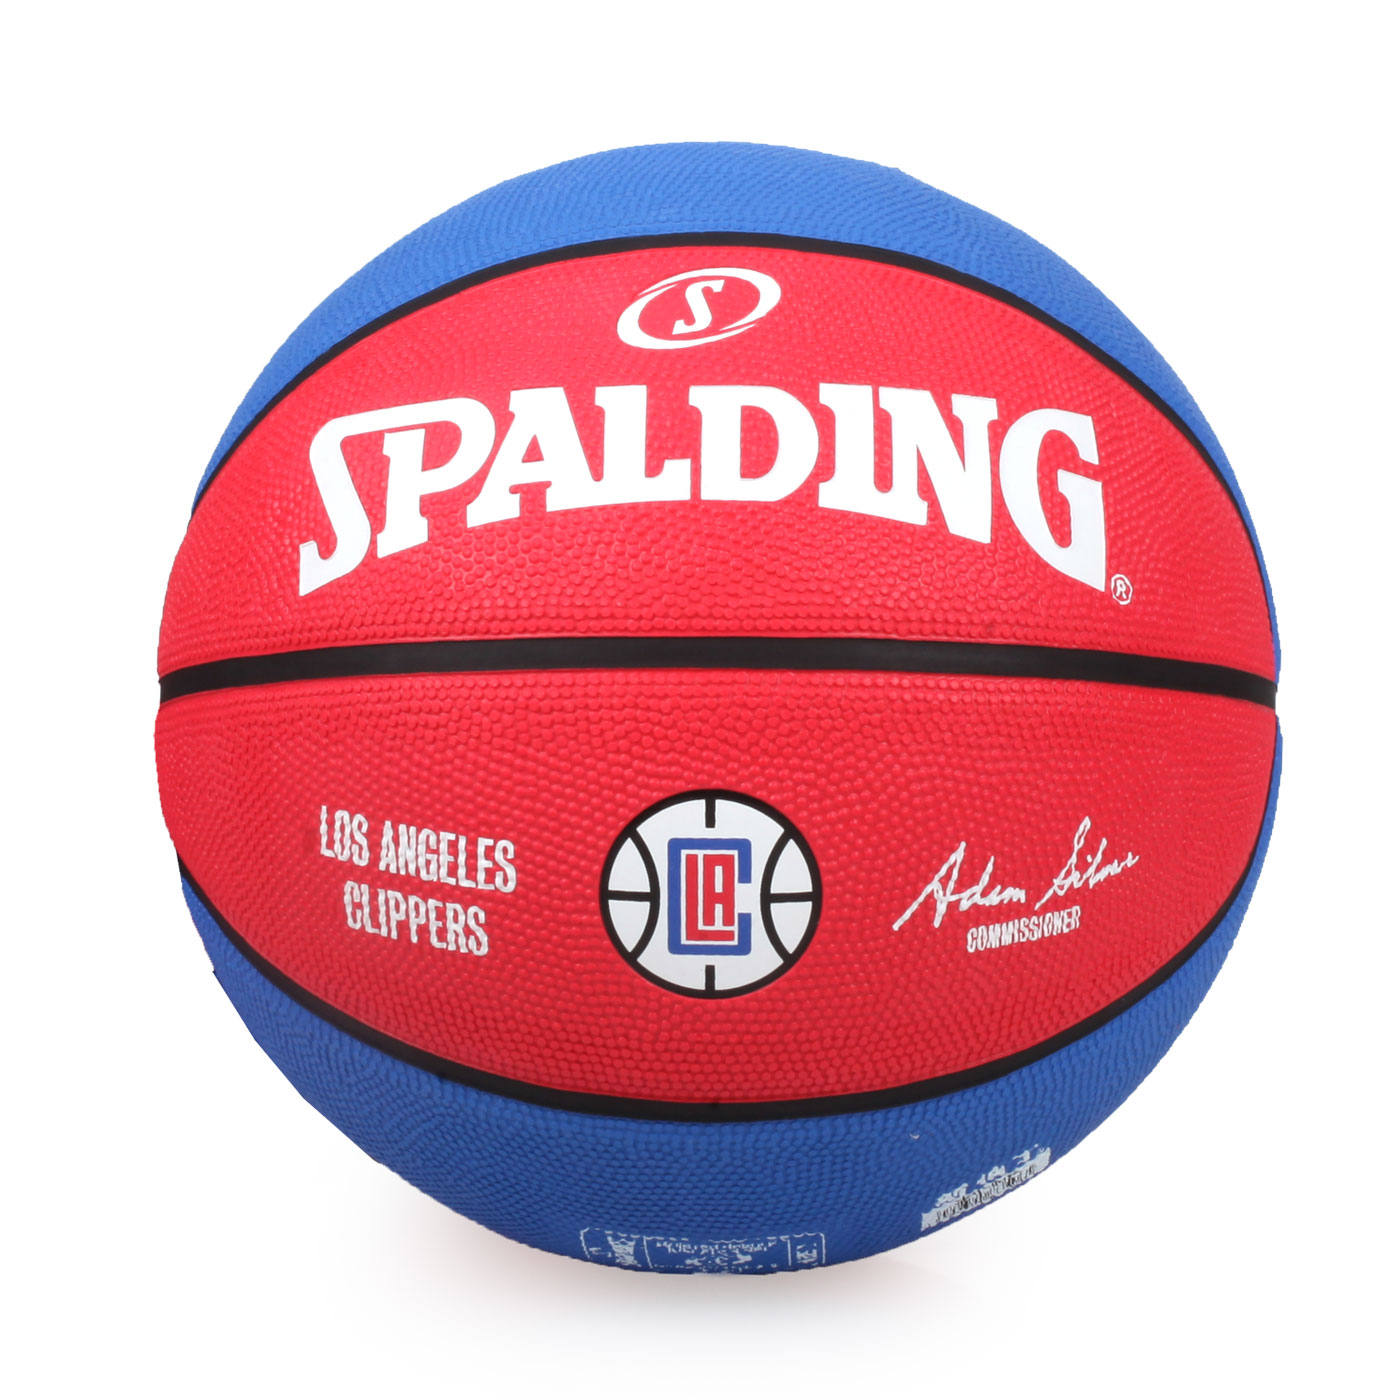 SPALDING 快艇 Clippers 7號籃球 SPA83506 - 紅藍白